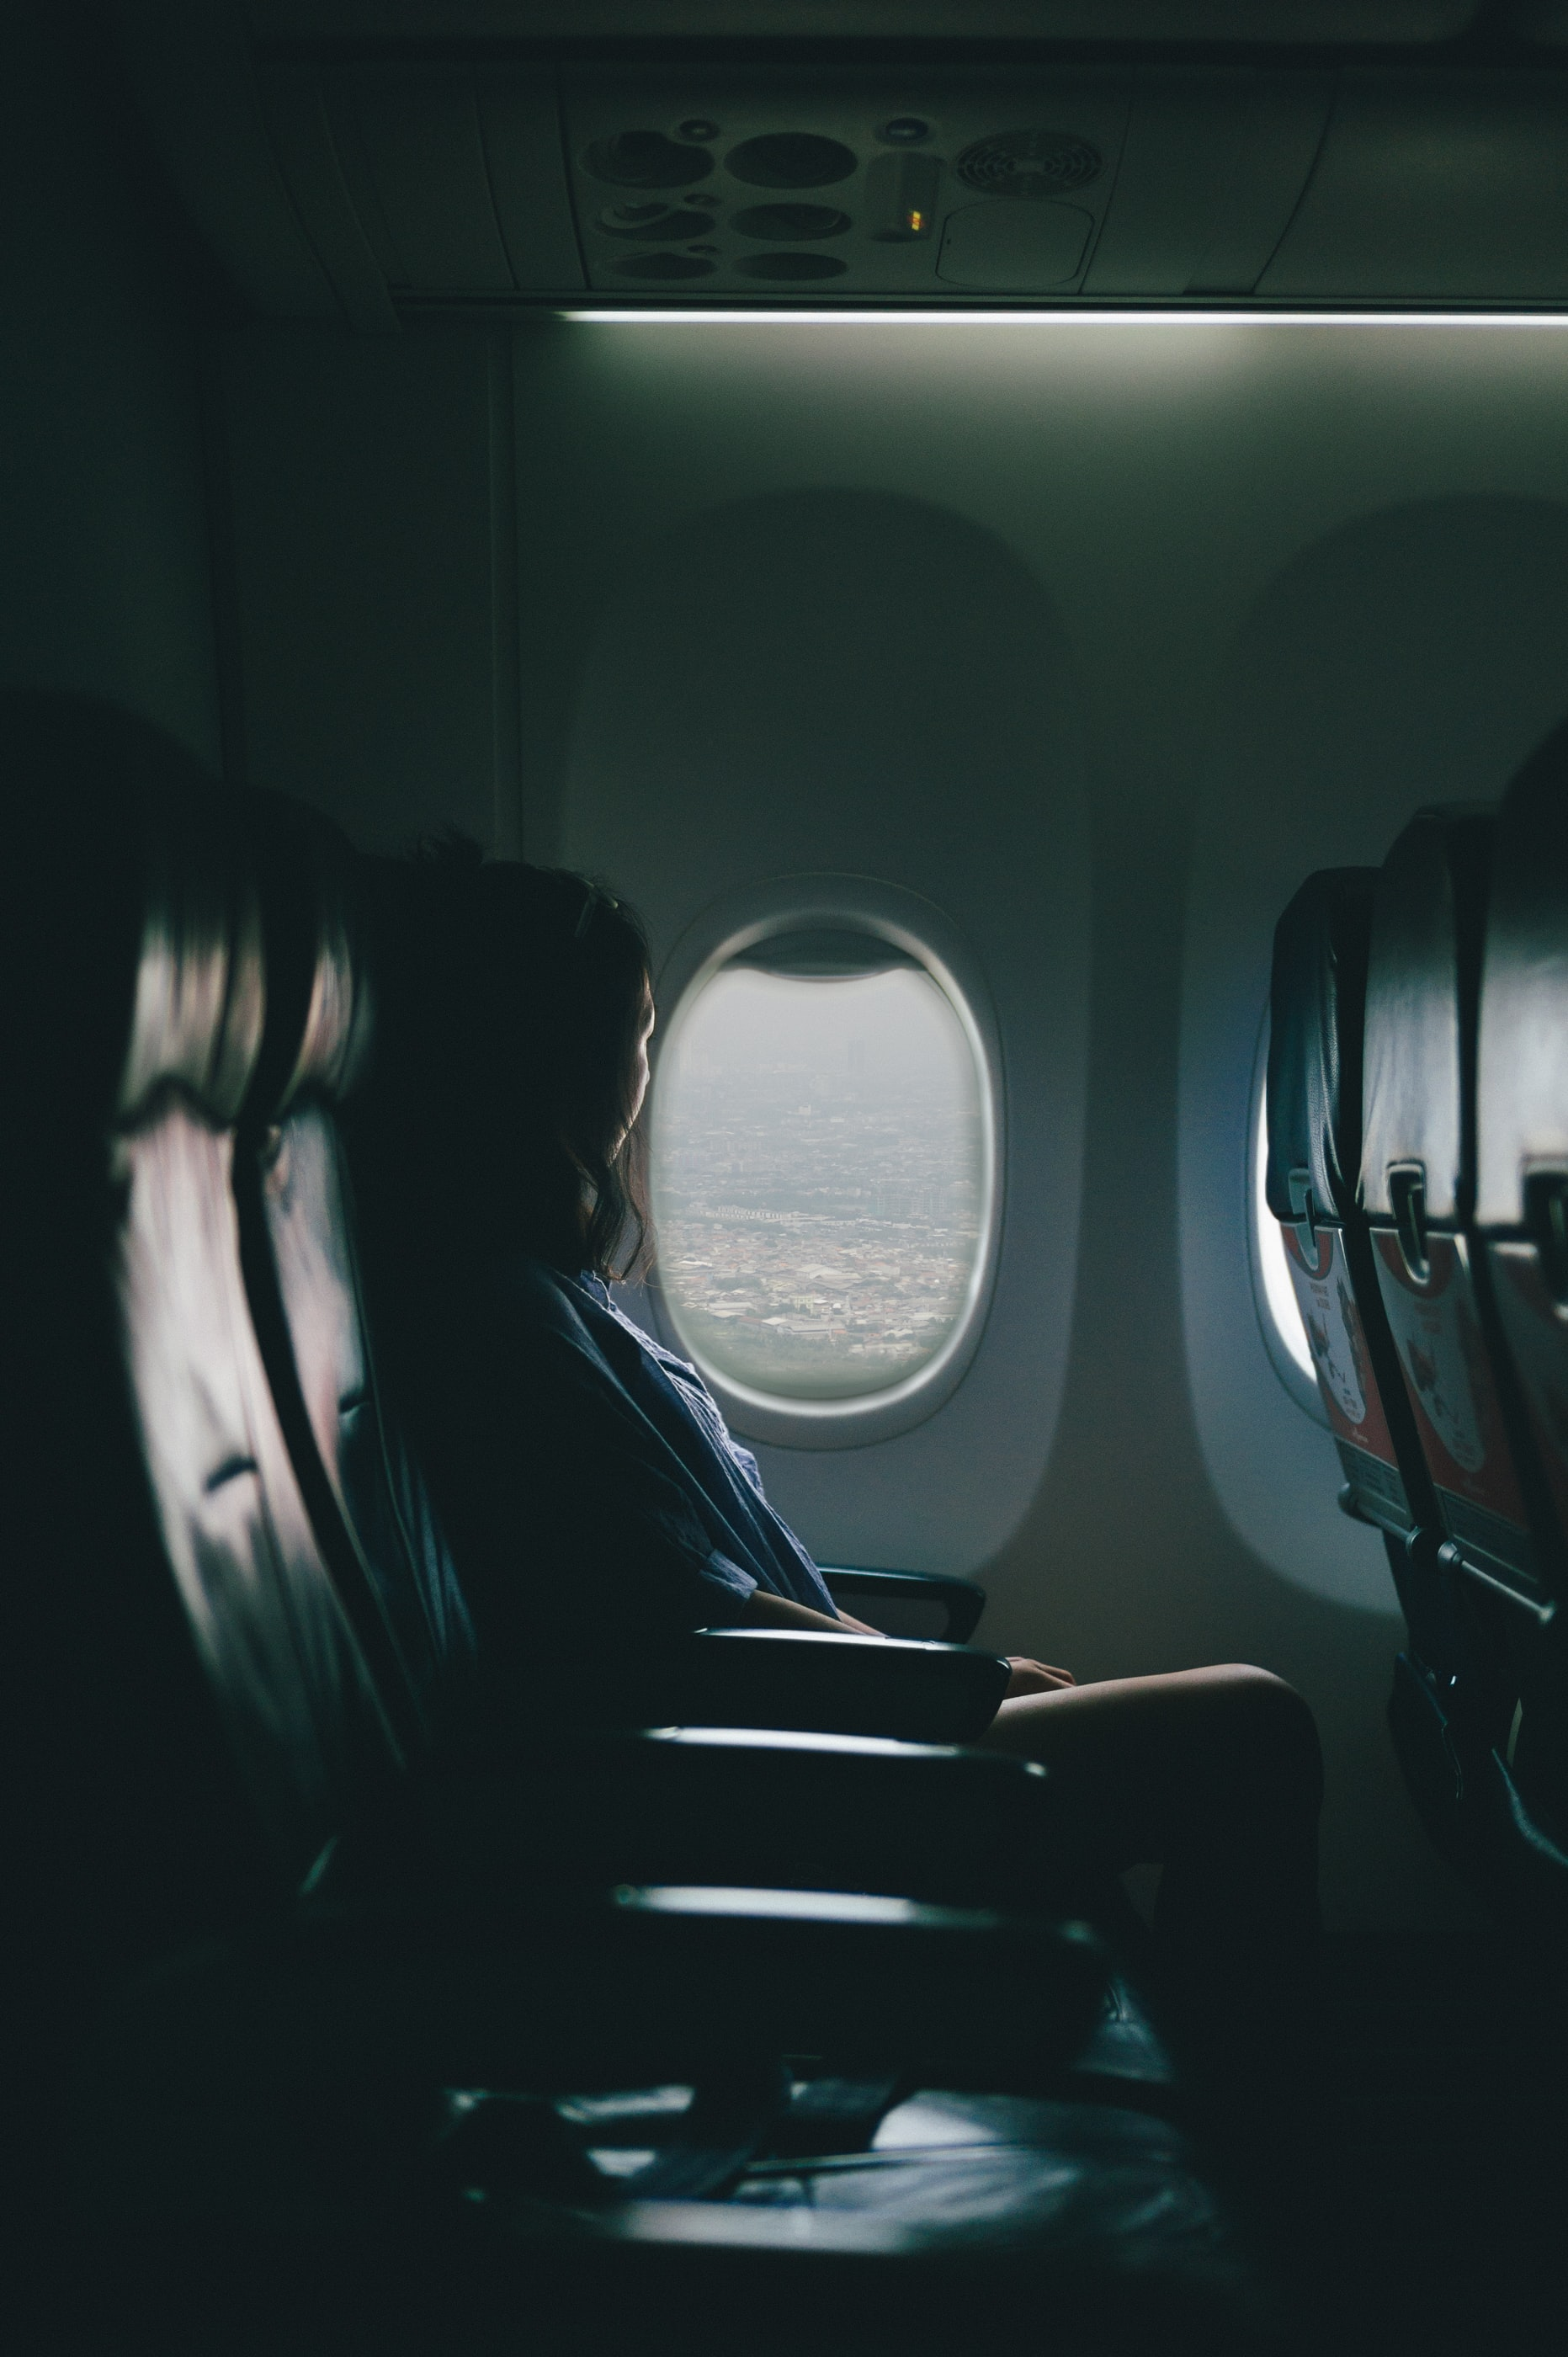 woman sits on seat near window inside plane